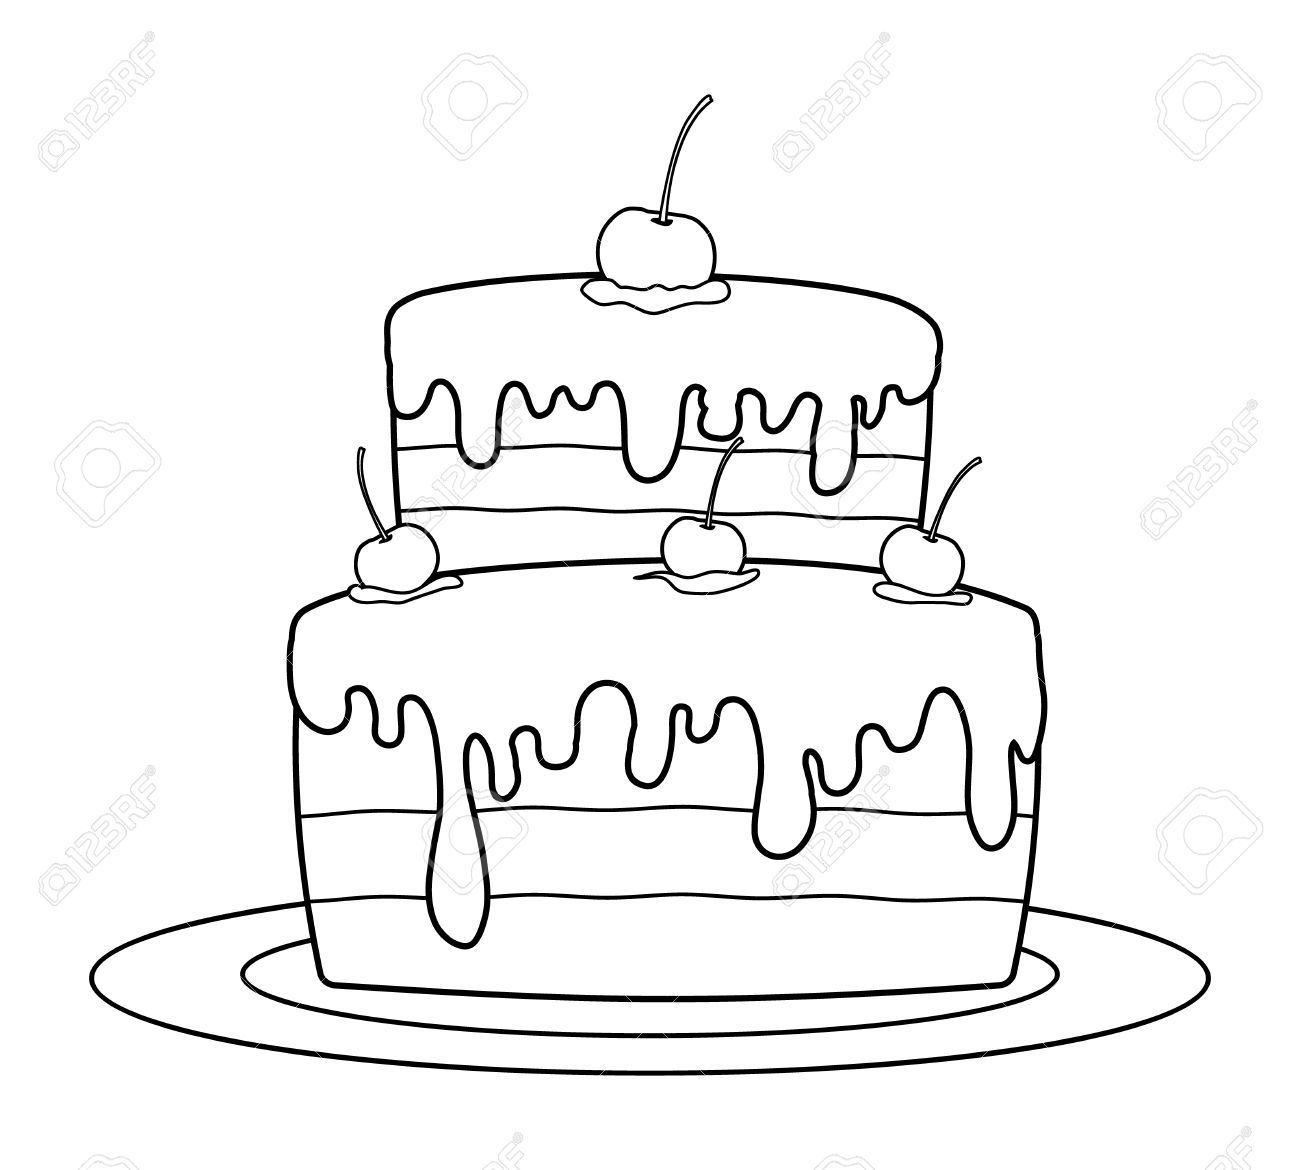 27+ Cake clipart black and white vector ideas